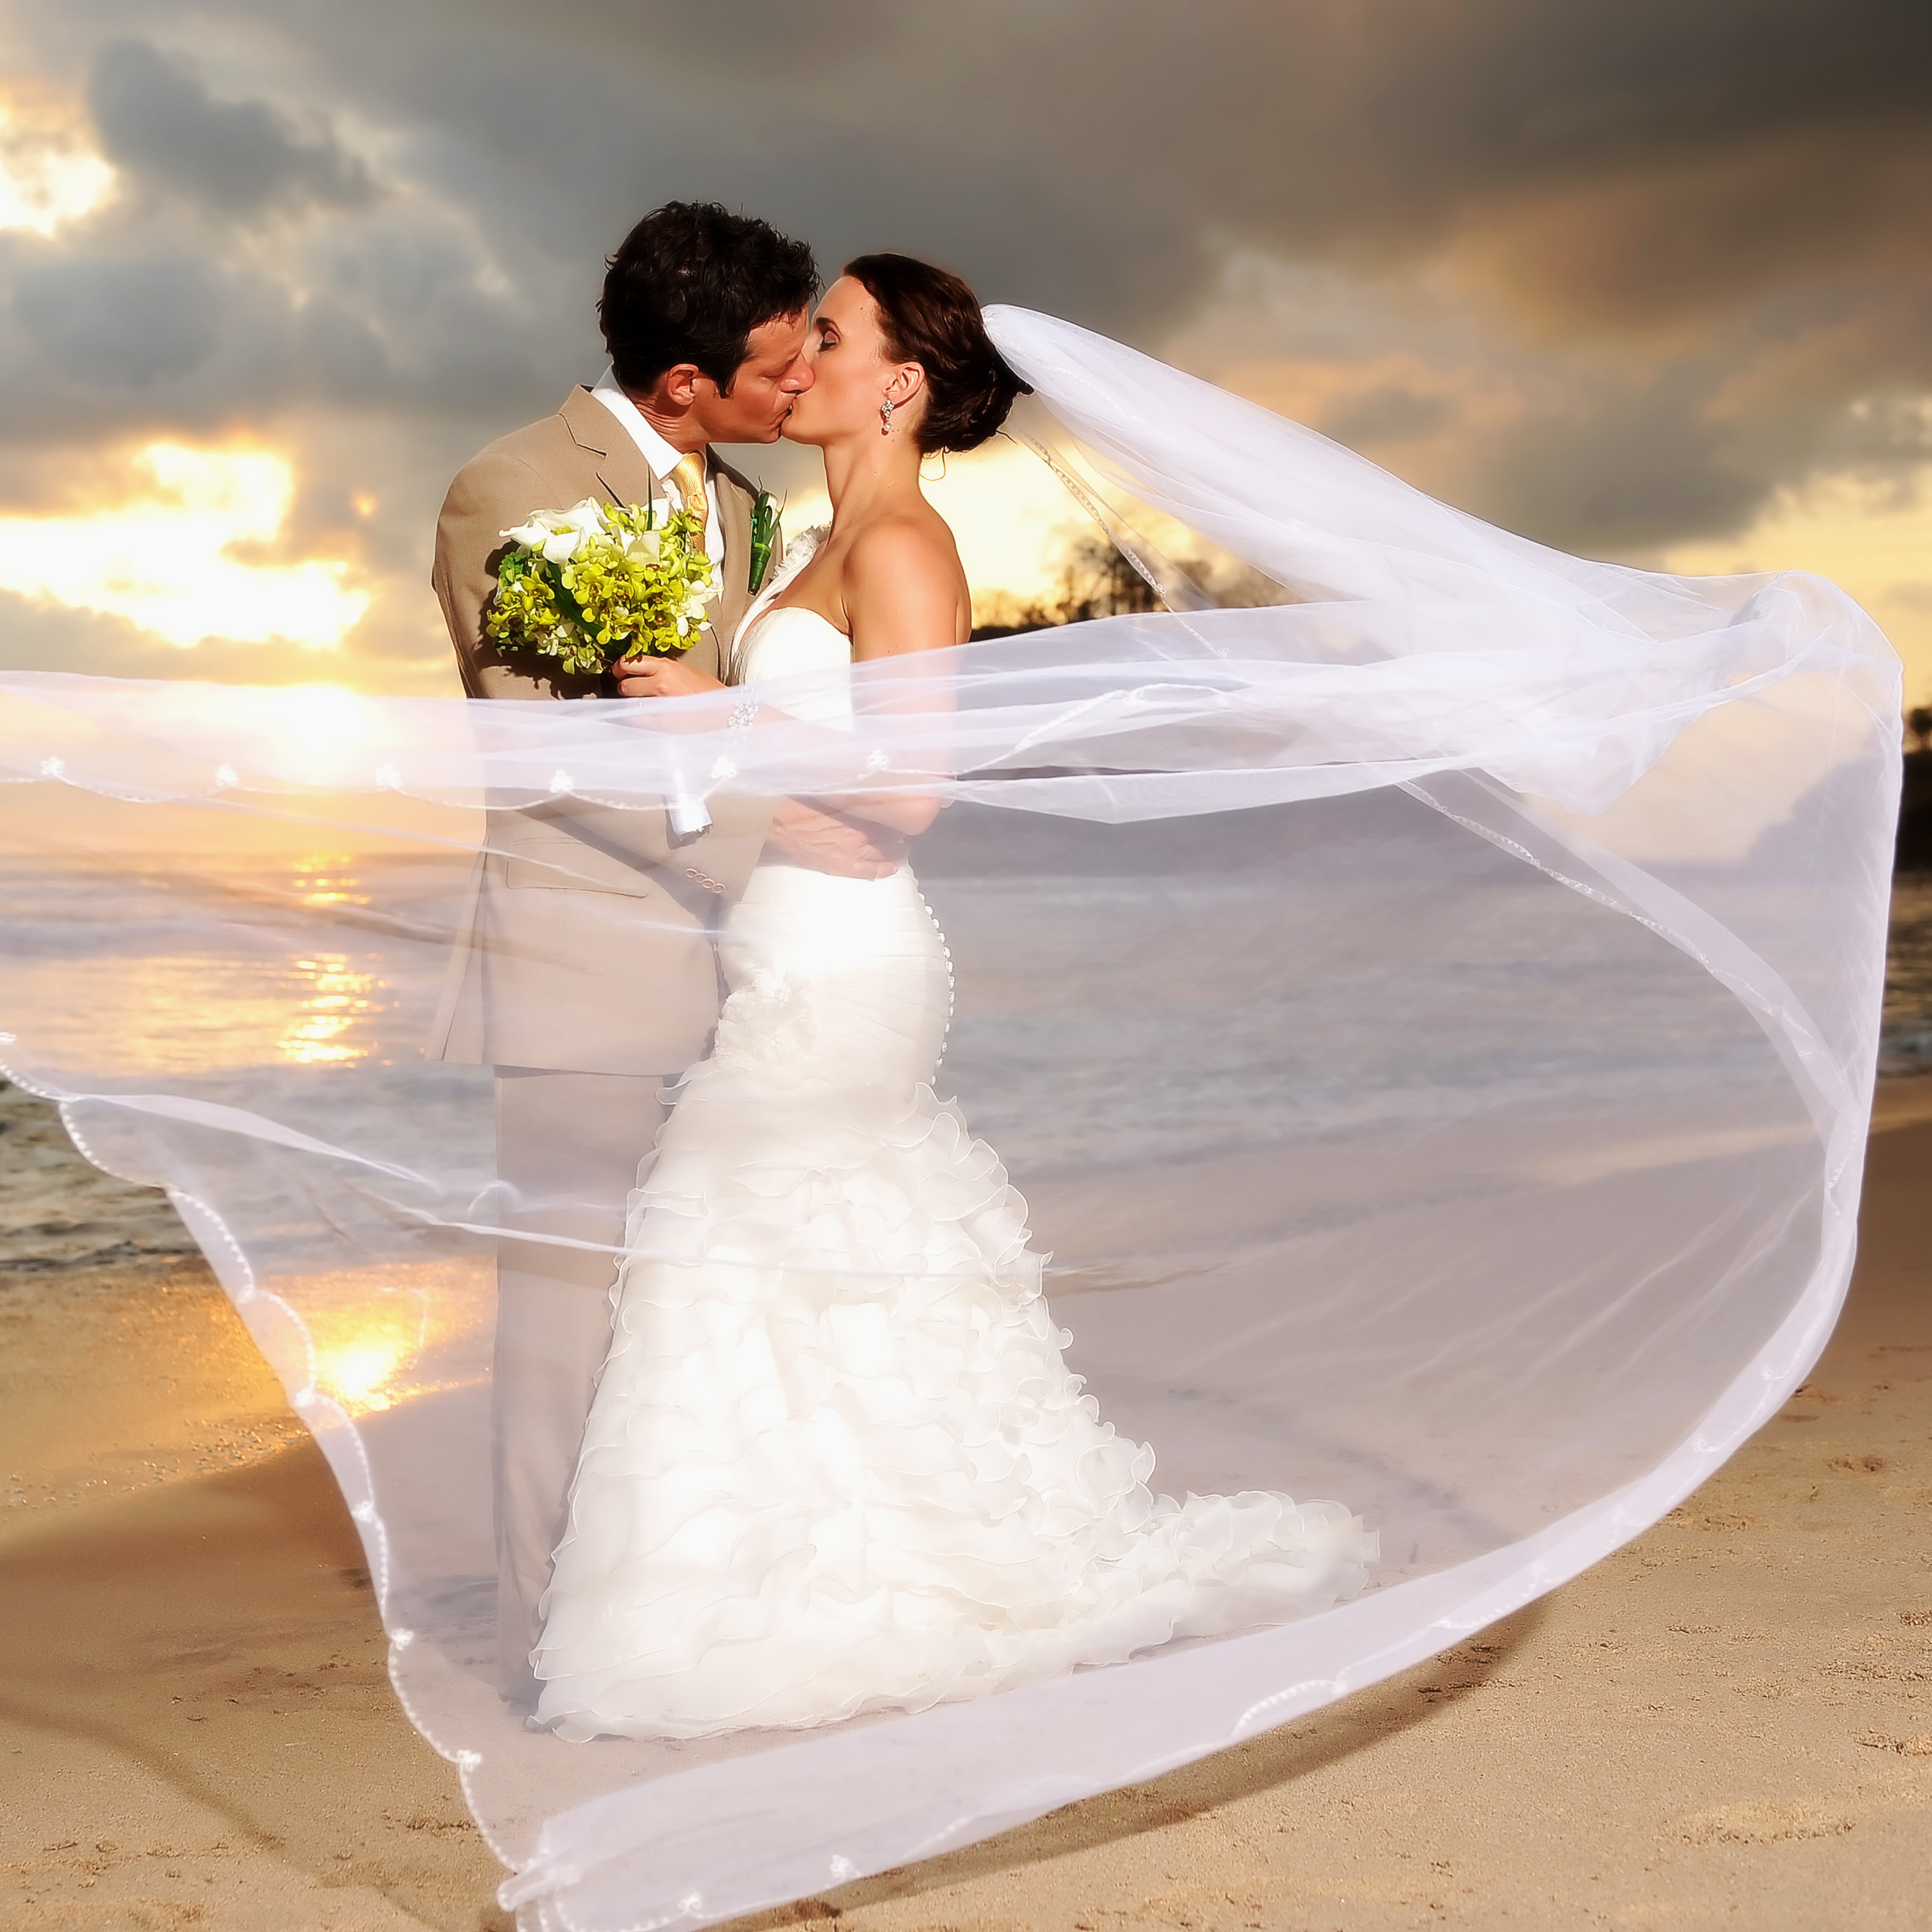 Romantic Honeymoon : Romantic Wedding Kiss Images & Pictures - Becuo